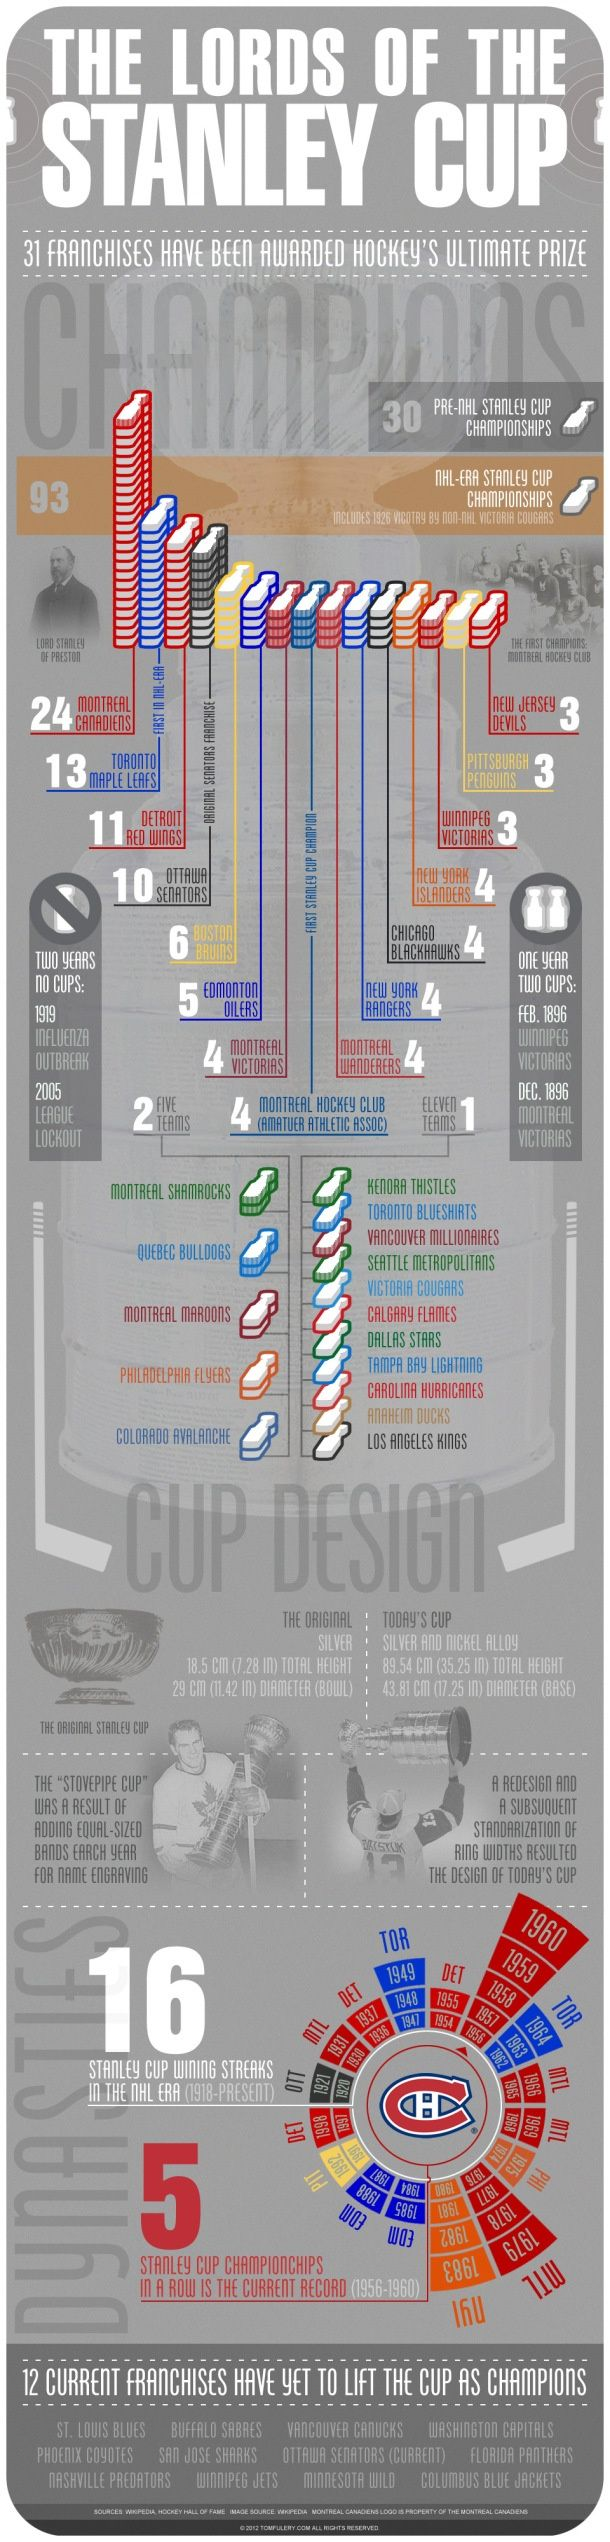 Lords of the Stanley Cup. LOL at 2 years without a Stanley Cup being the Spanish Influenza outbreak in 1919...and then the lockout in 2005.